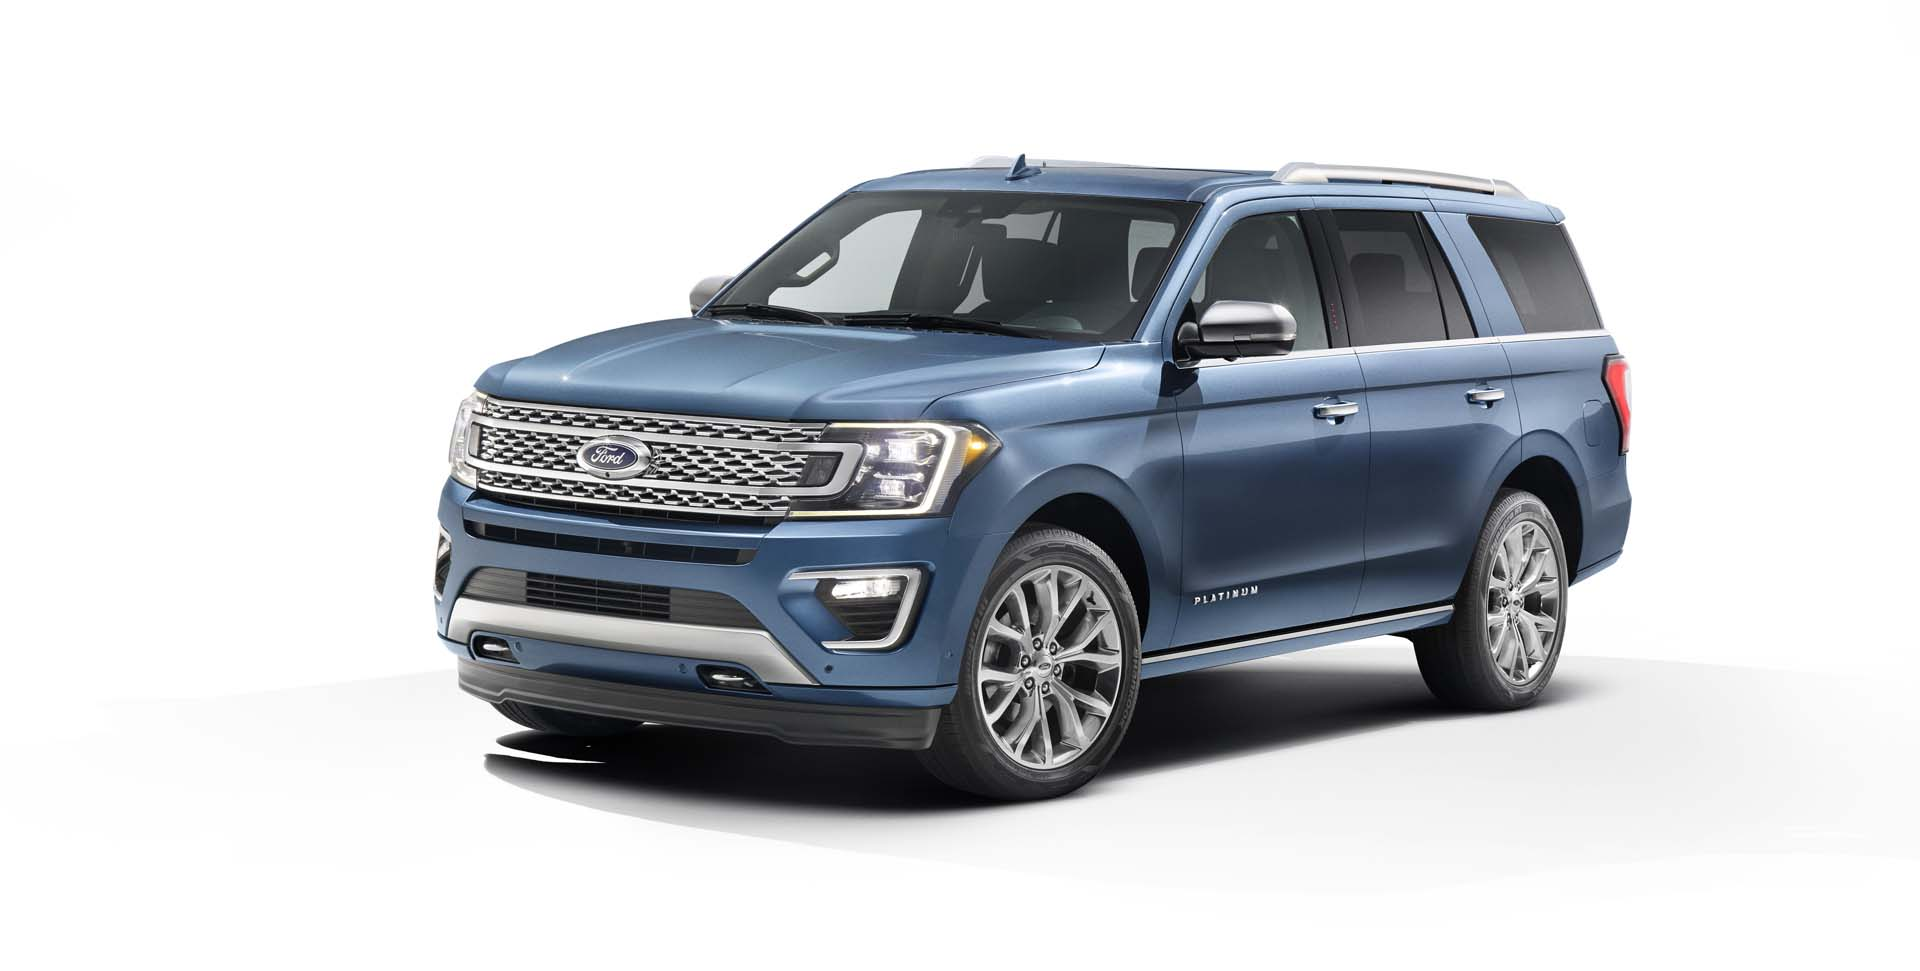 Summer driving, Ford Expedition pricing, Audi e-tron Sportback: What